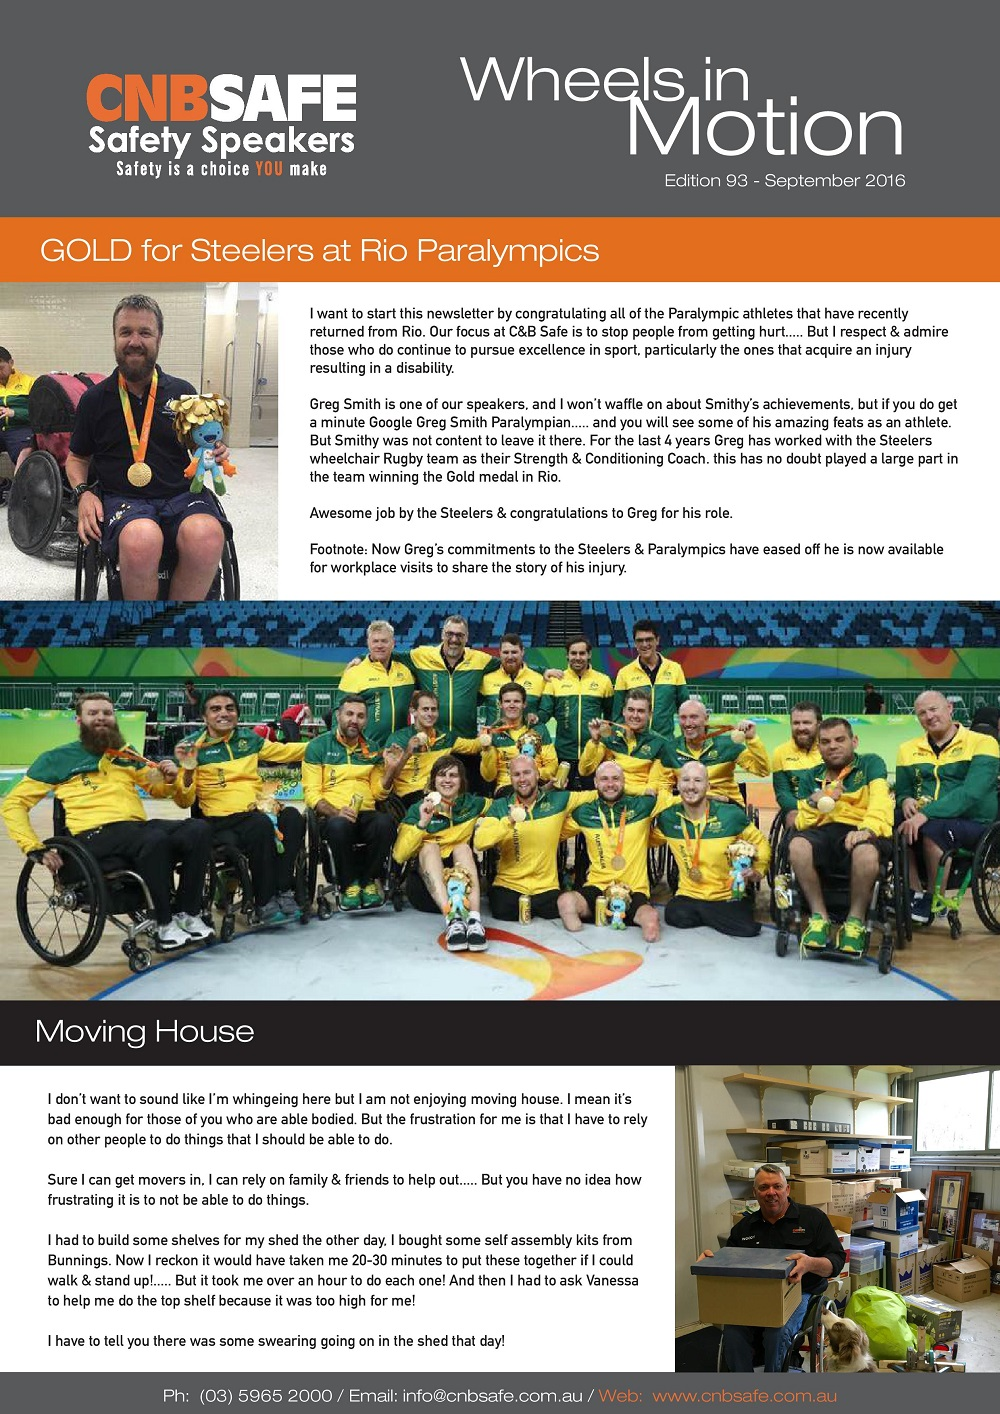 wheels-in-motion-september-2016-edition-93-page-001